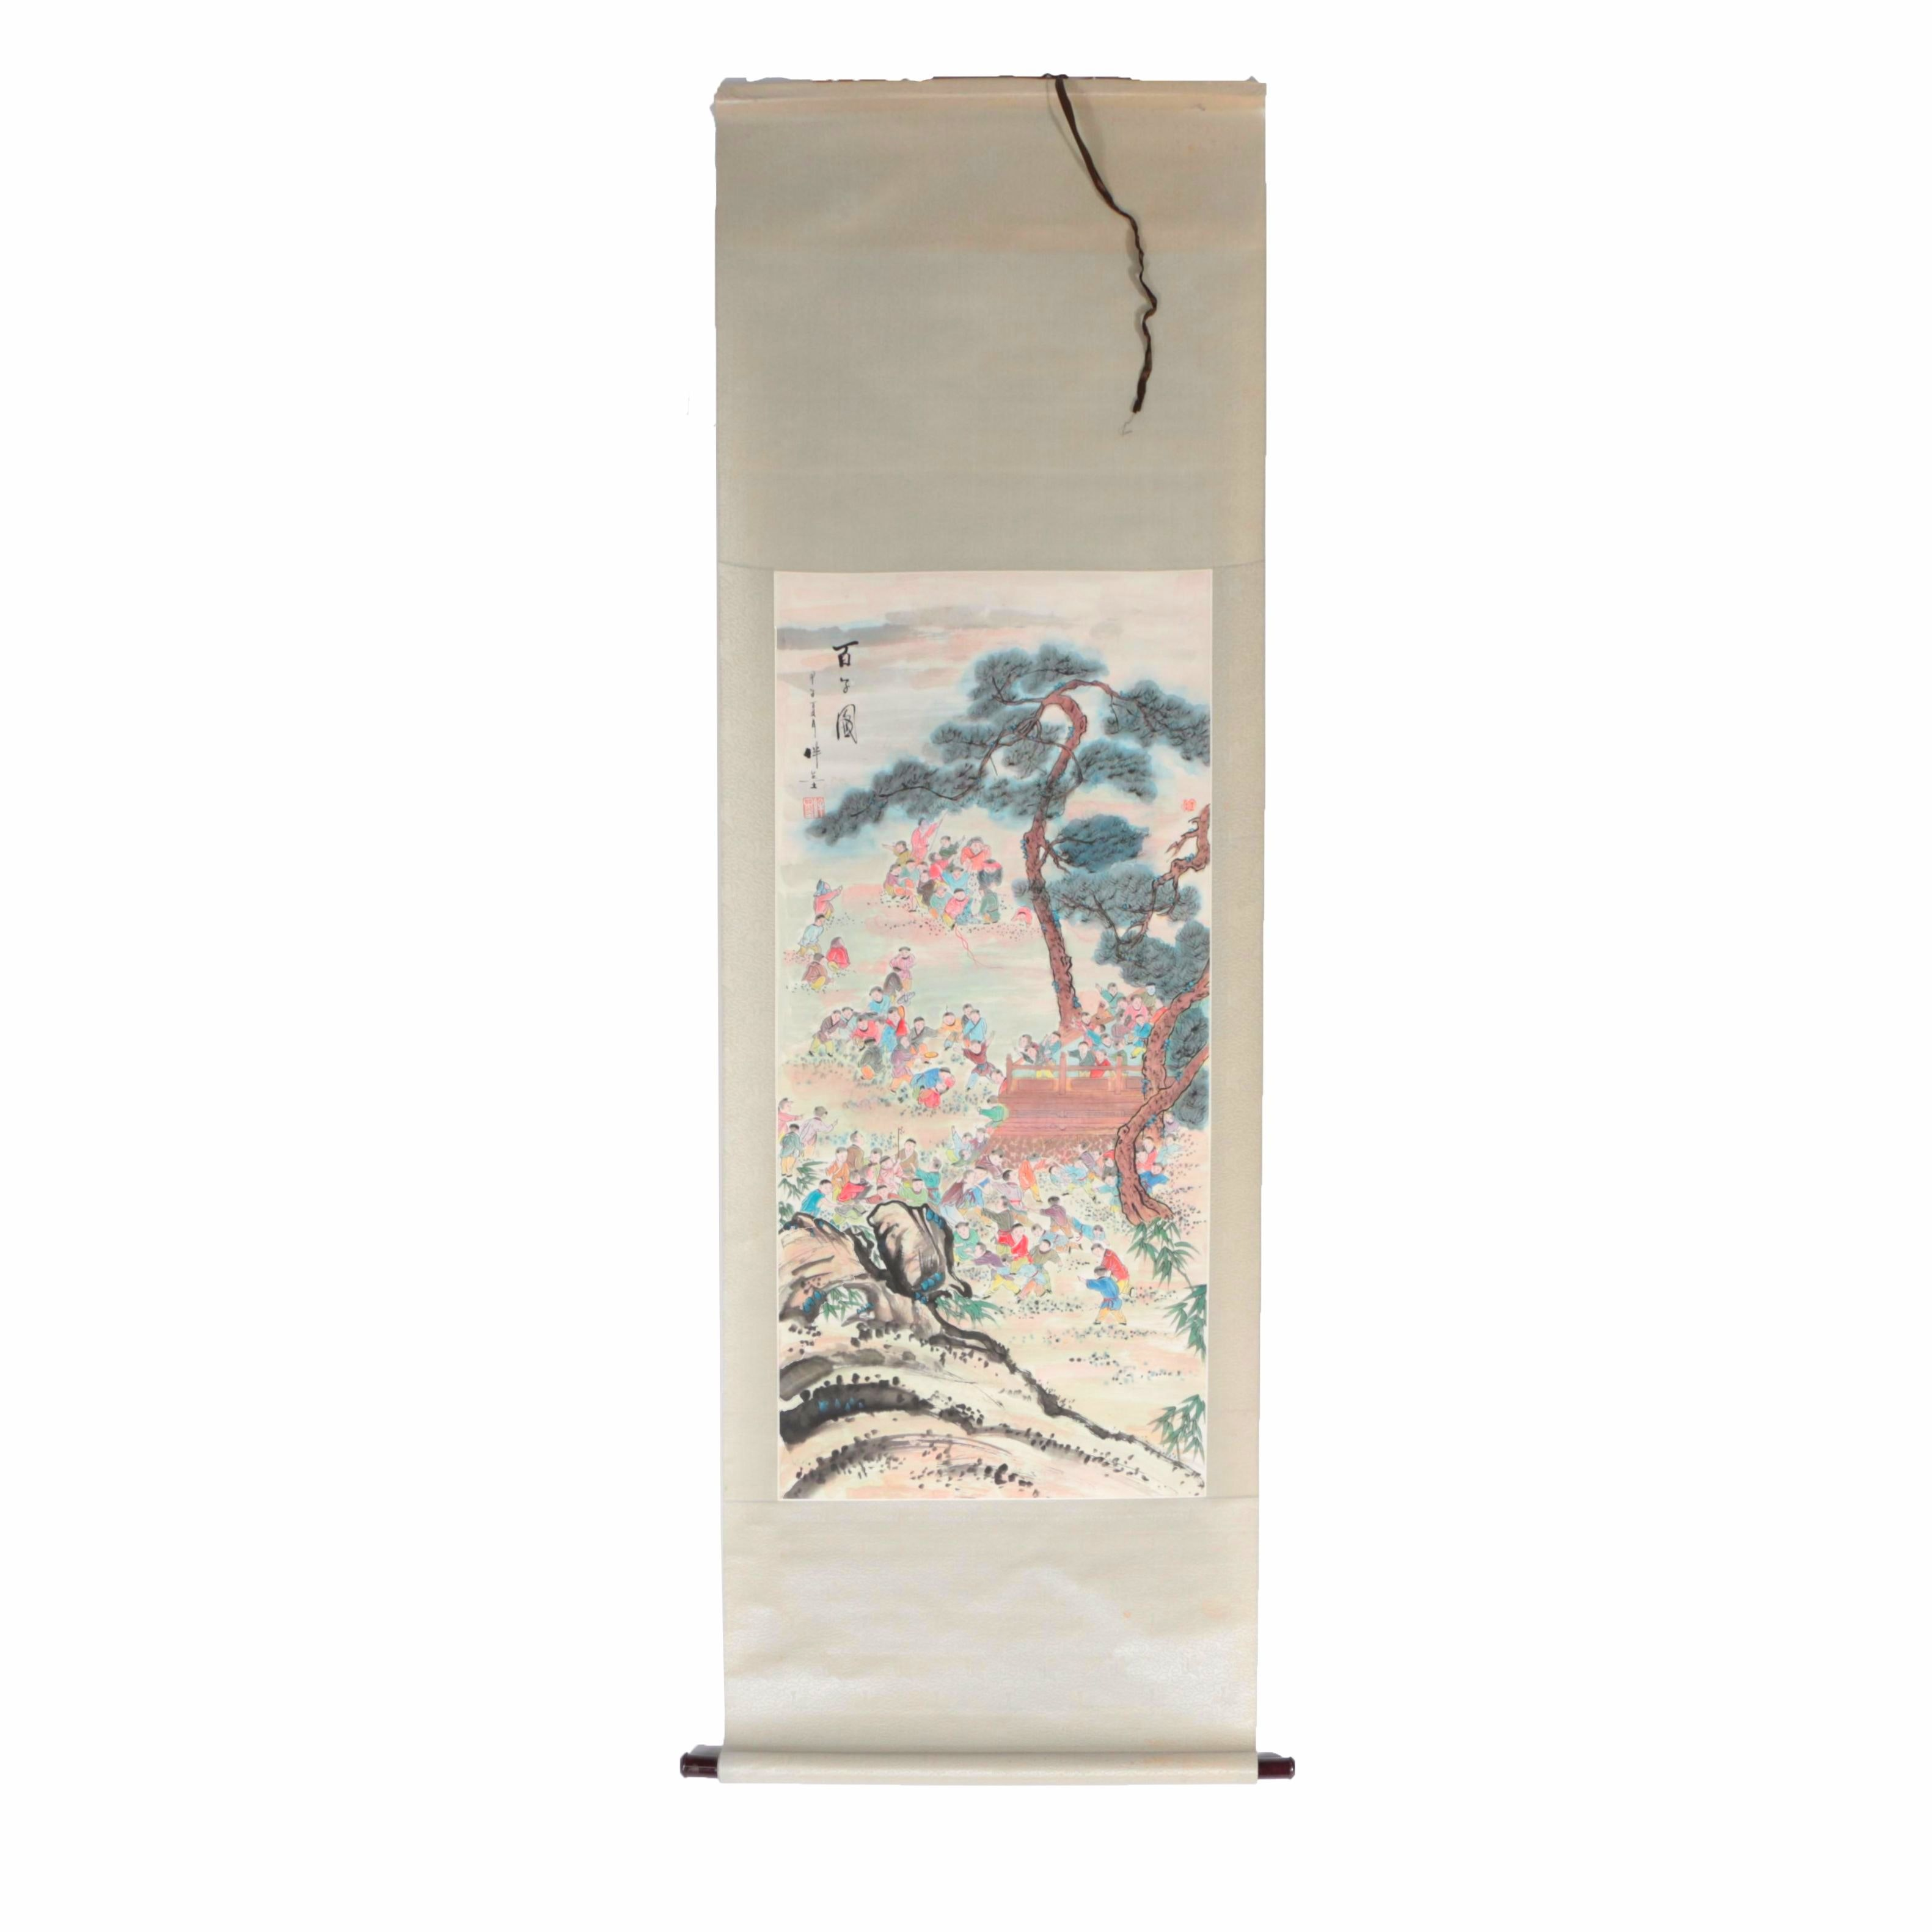 Chinese Watercolor Painting on a Hanging Scroll of One Hundred Children